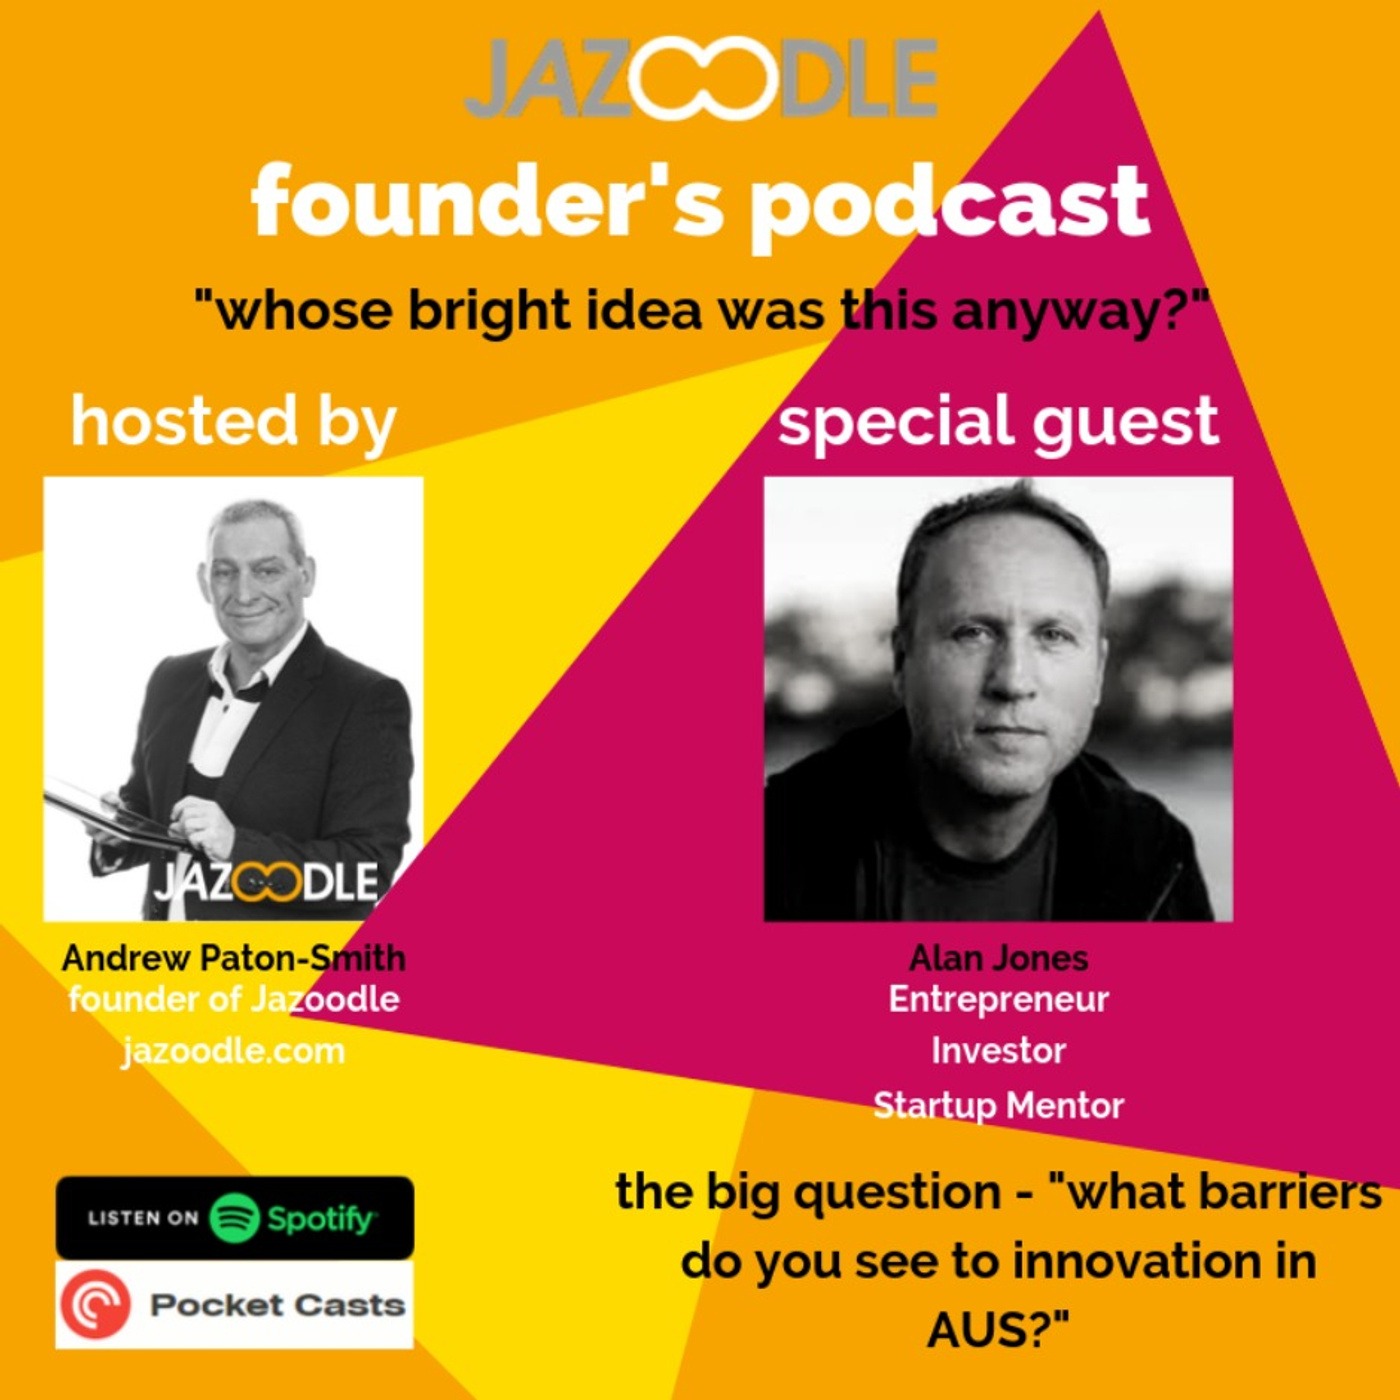 Whose bright idea was this anyway - episode 1 with special guest Alan Jones